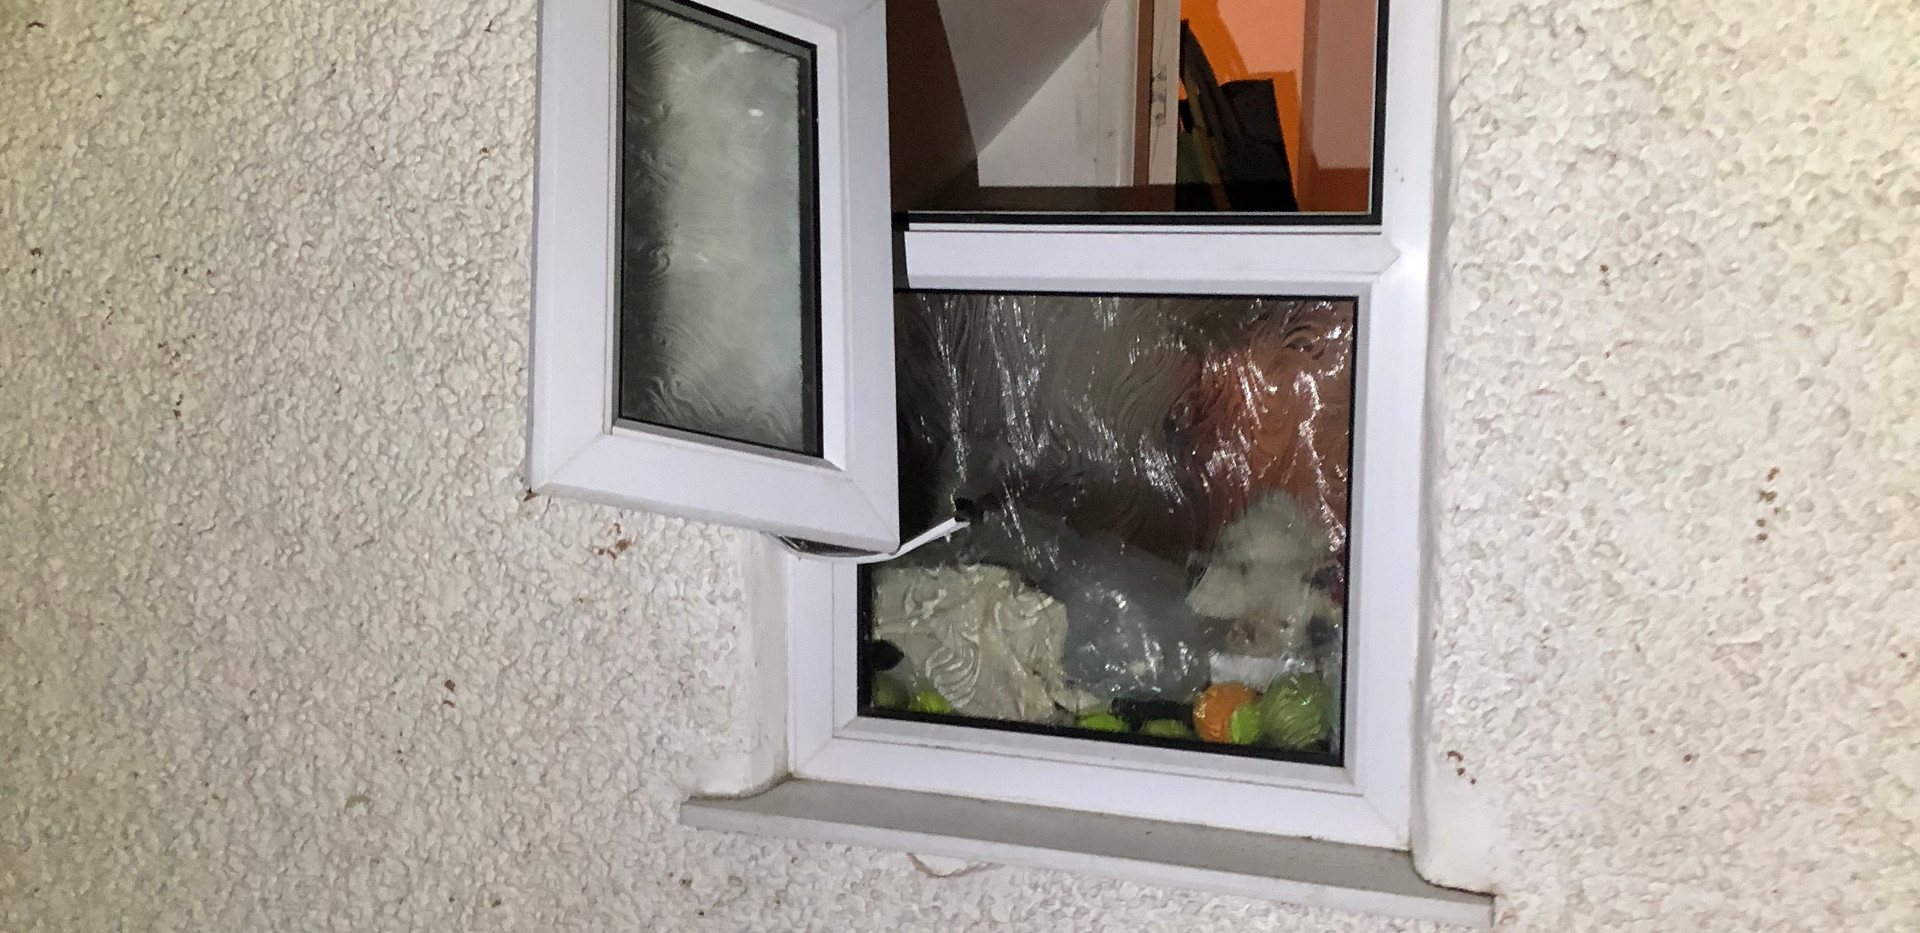 forced entry through a window in a burglary